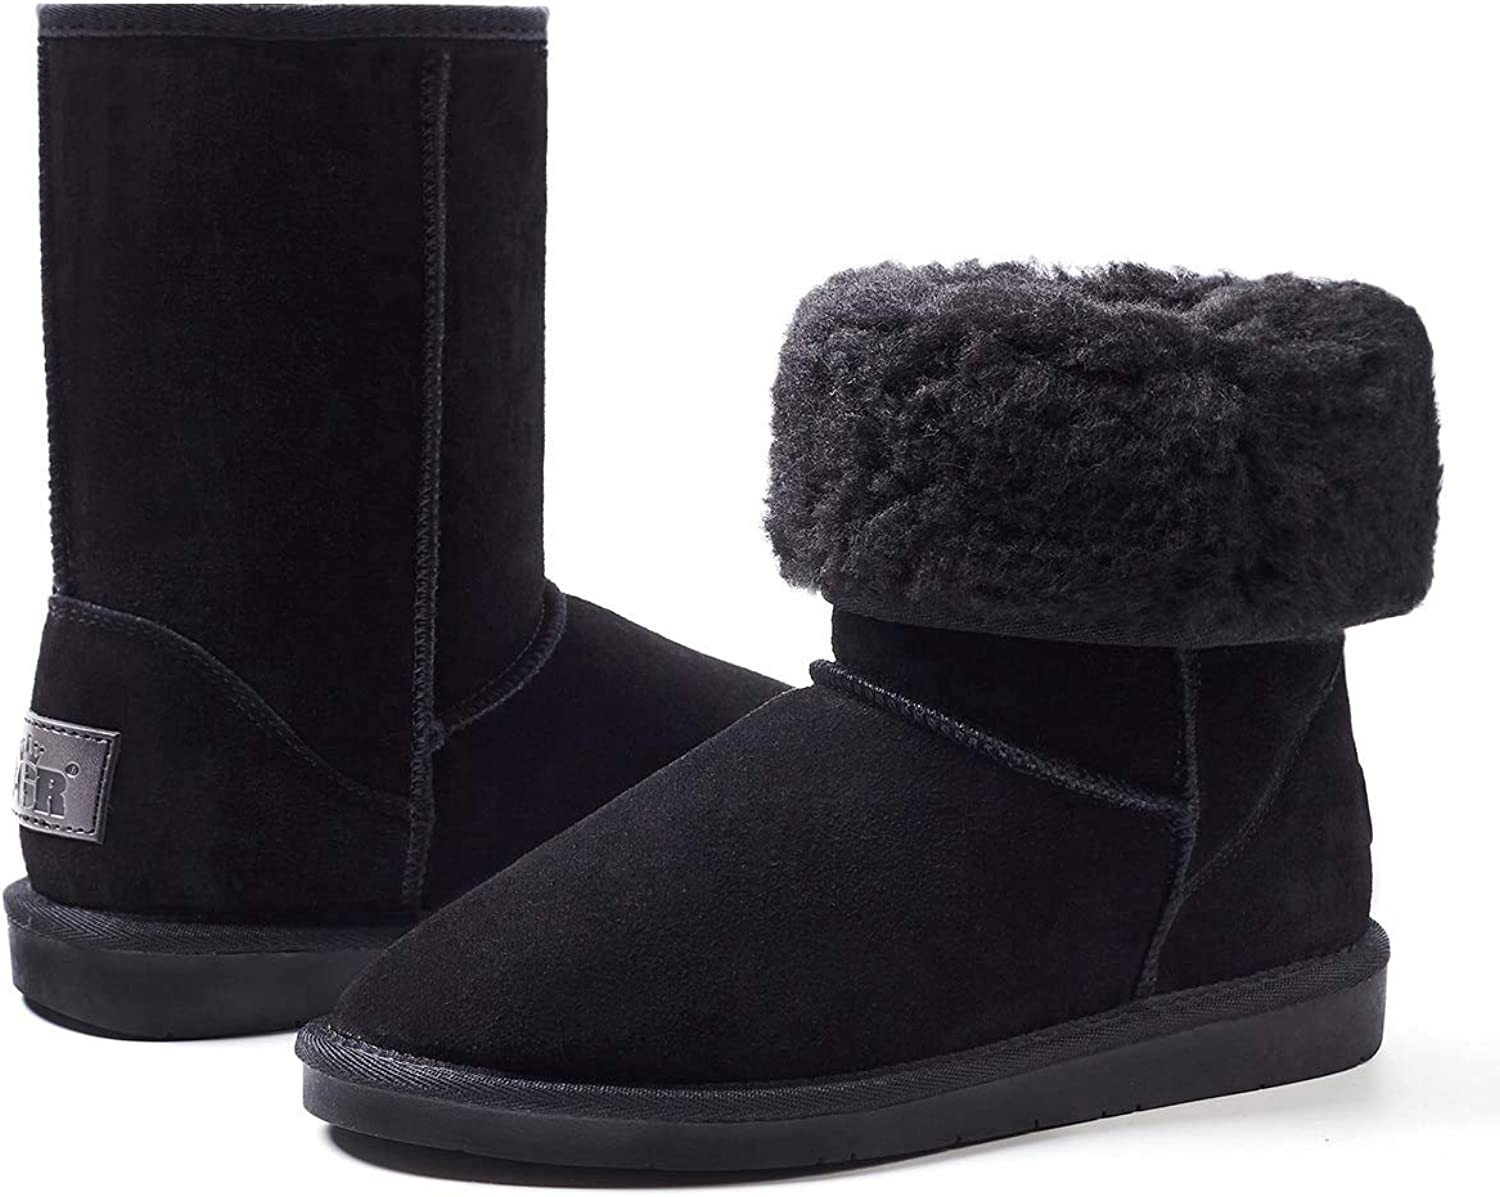 ZGR Women's Classic Suede Leather Upper, Faux Fur Linning Short Mid Calf Winter Boot